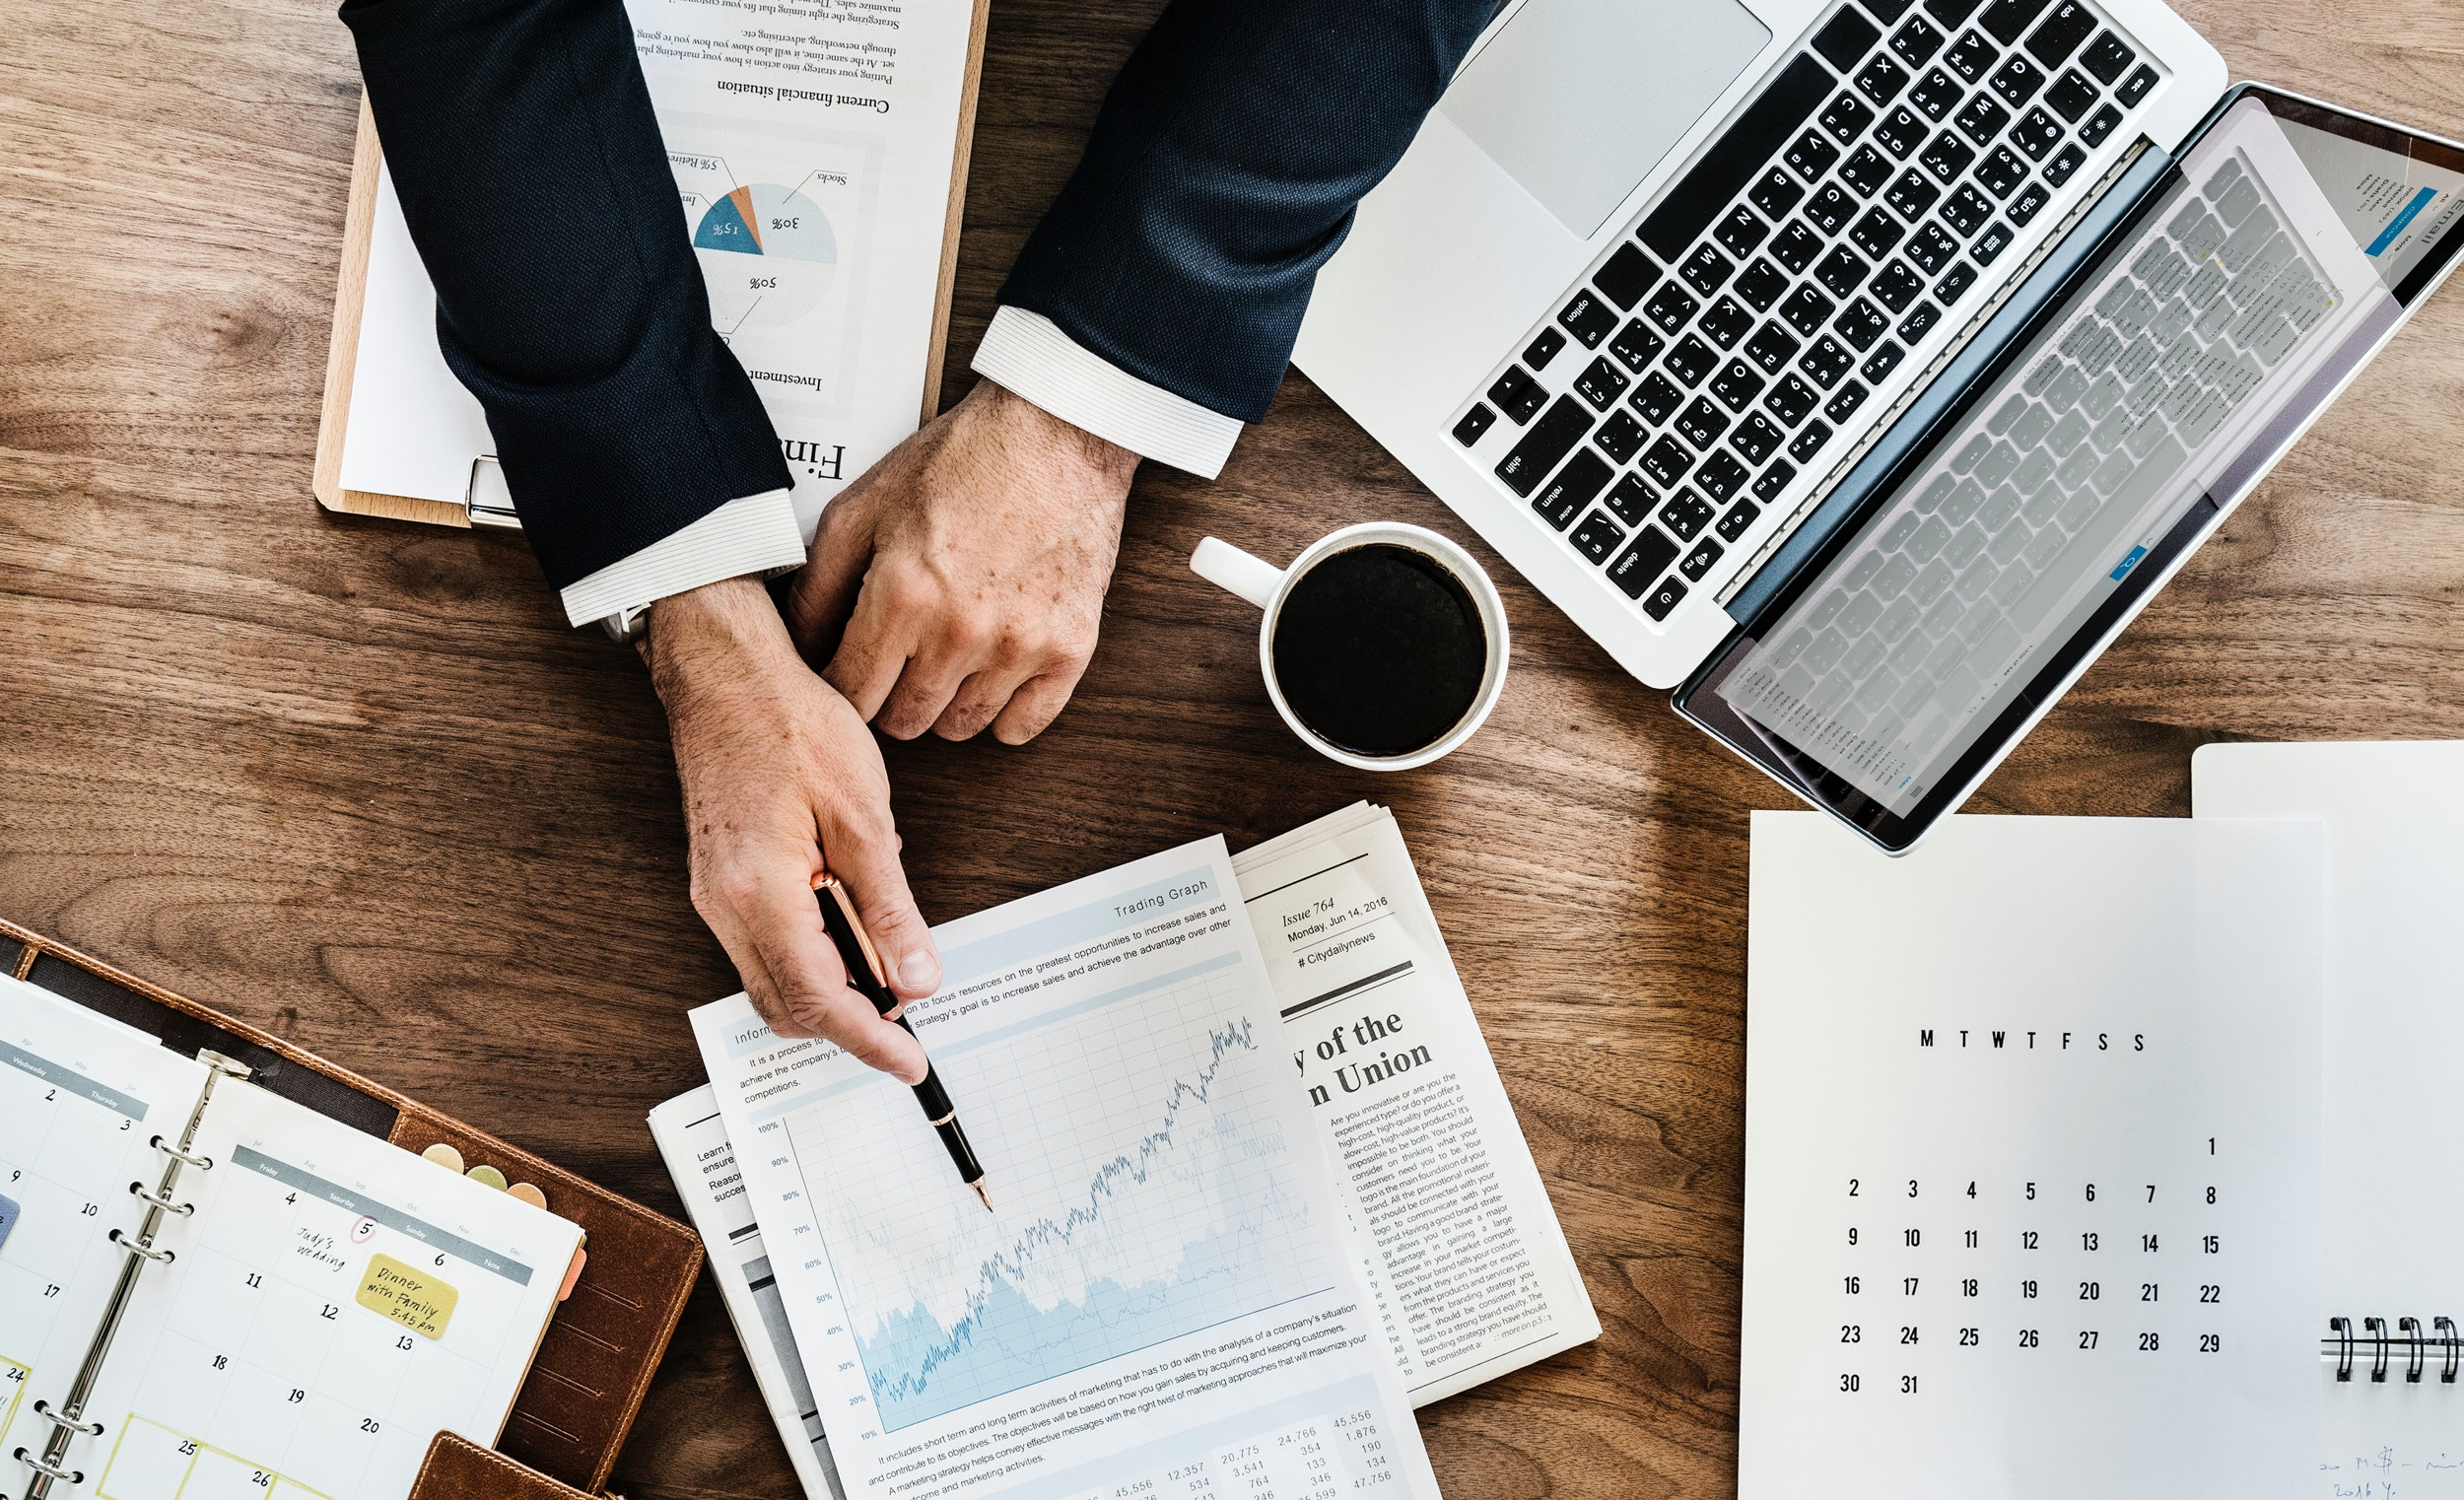 Numu Consulting can assist you with Pro Forma Financial Statements, Reports & Presentations, Complex Transactions, Multiple/Company Subsidiary Consolidation and other business, technology and financial consulting services.